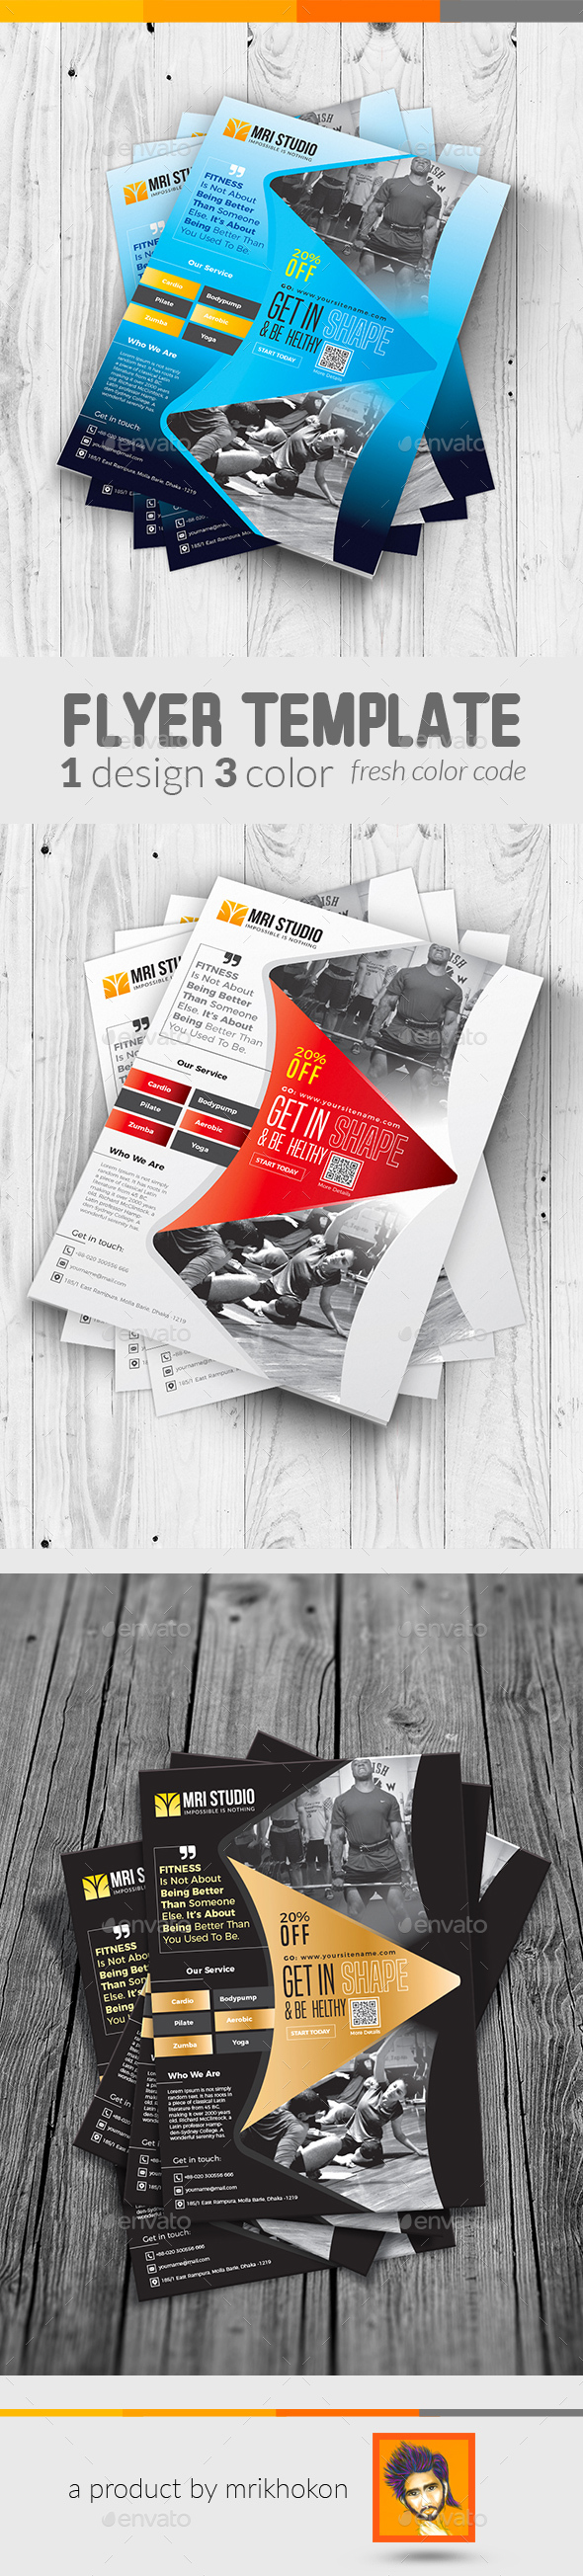 Fitness Flyer / Gym Flyer Template - Flyers Print Templates